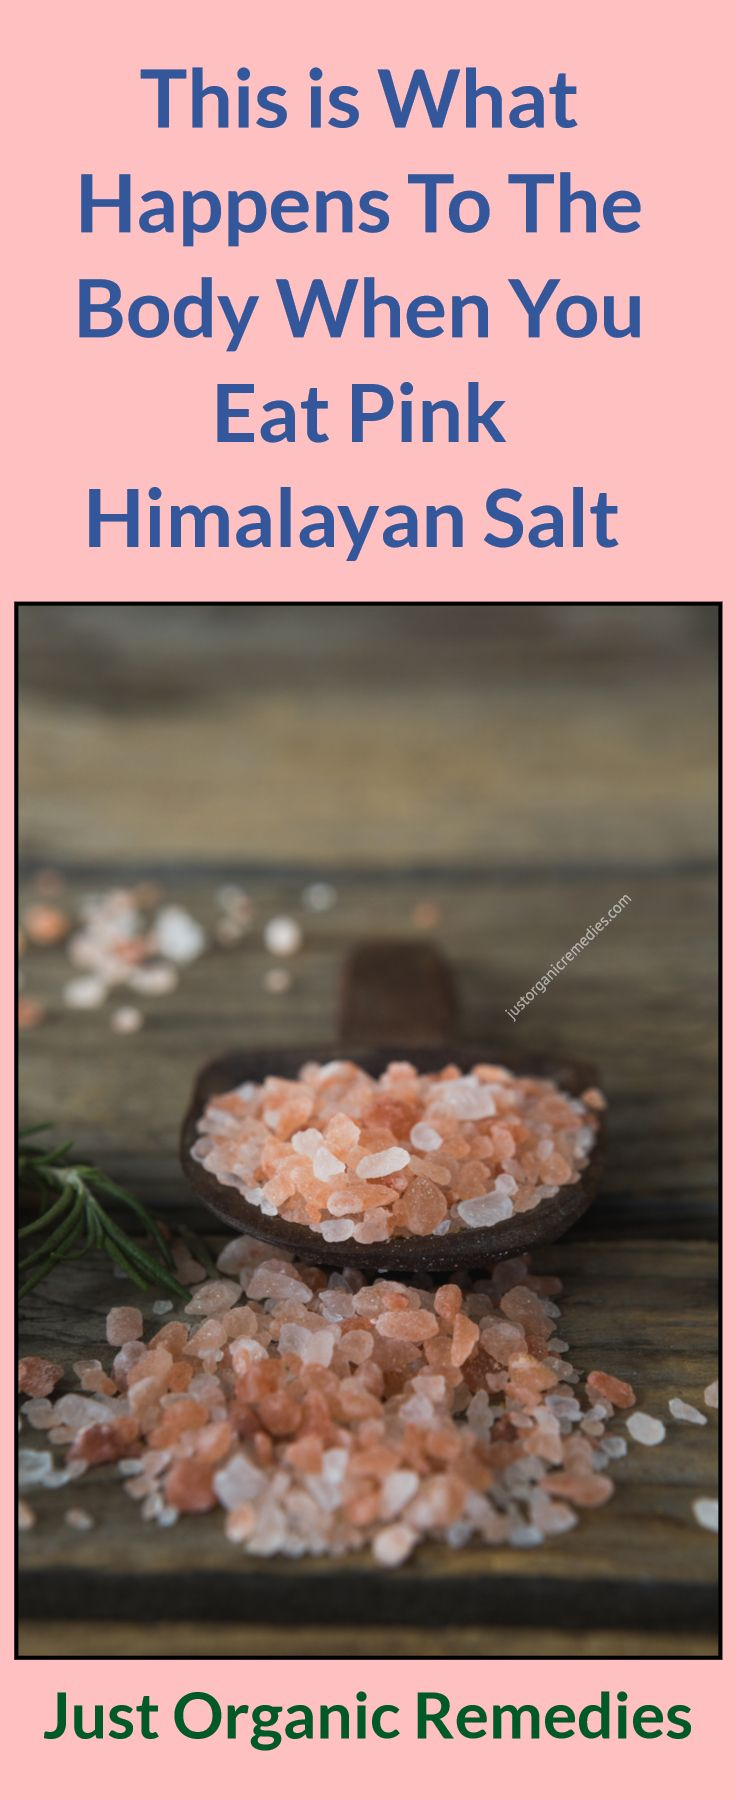 Himalayan salt consists of mineral packed crystals that are formed naturally within the earth, and they are made up of 85.62% sodium chloride and 14.38% trace minerals such as sulphate, magnesium, calcium, potassium, bicarbonate, bromide, borate, strontium, and fluoride (in descending order of quantity). #HimalayanSalt